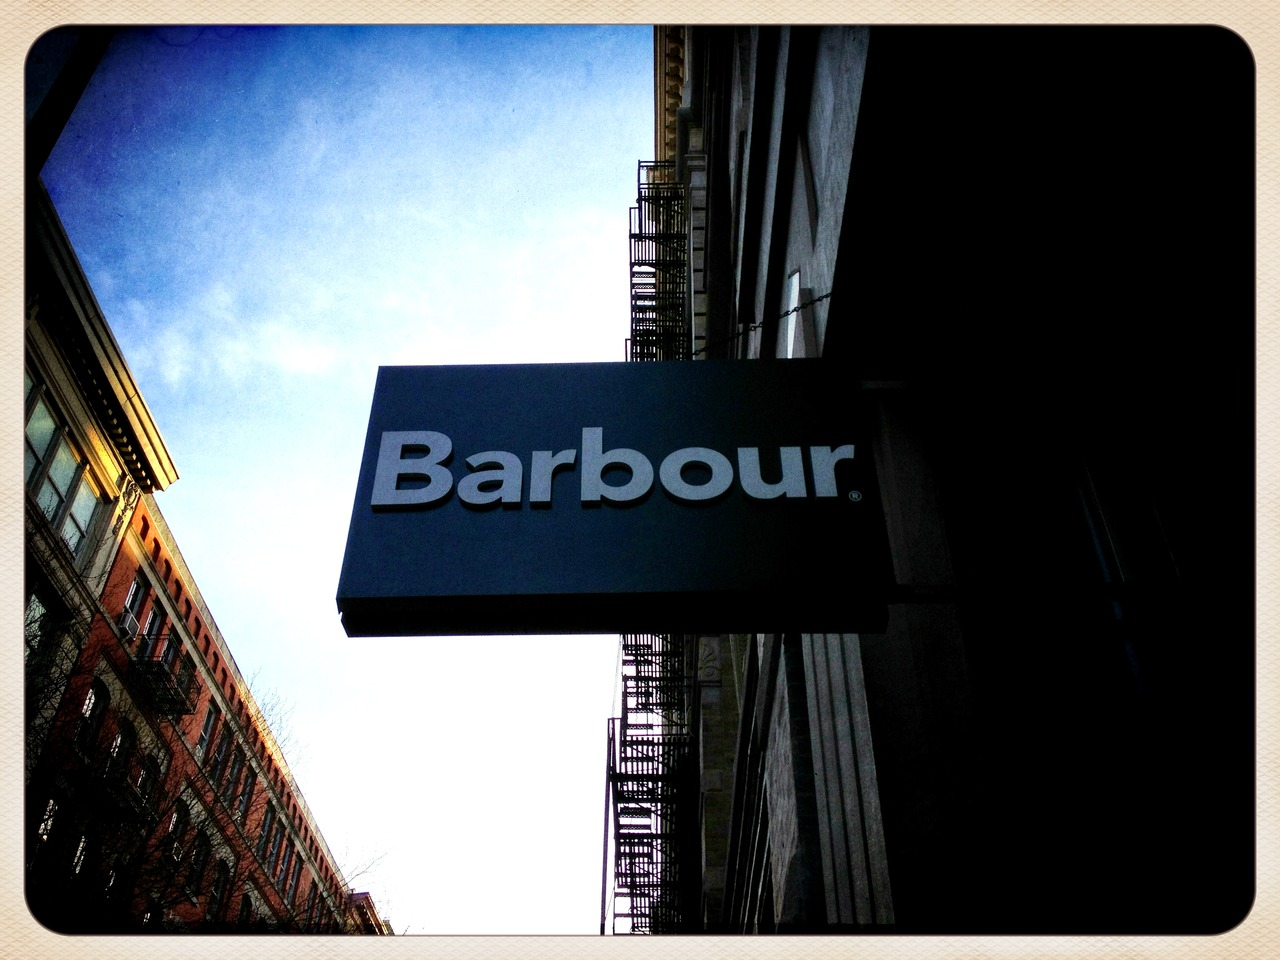 Barbour Store front #peppersearching #soho #retail #style